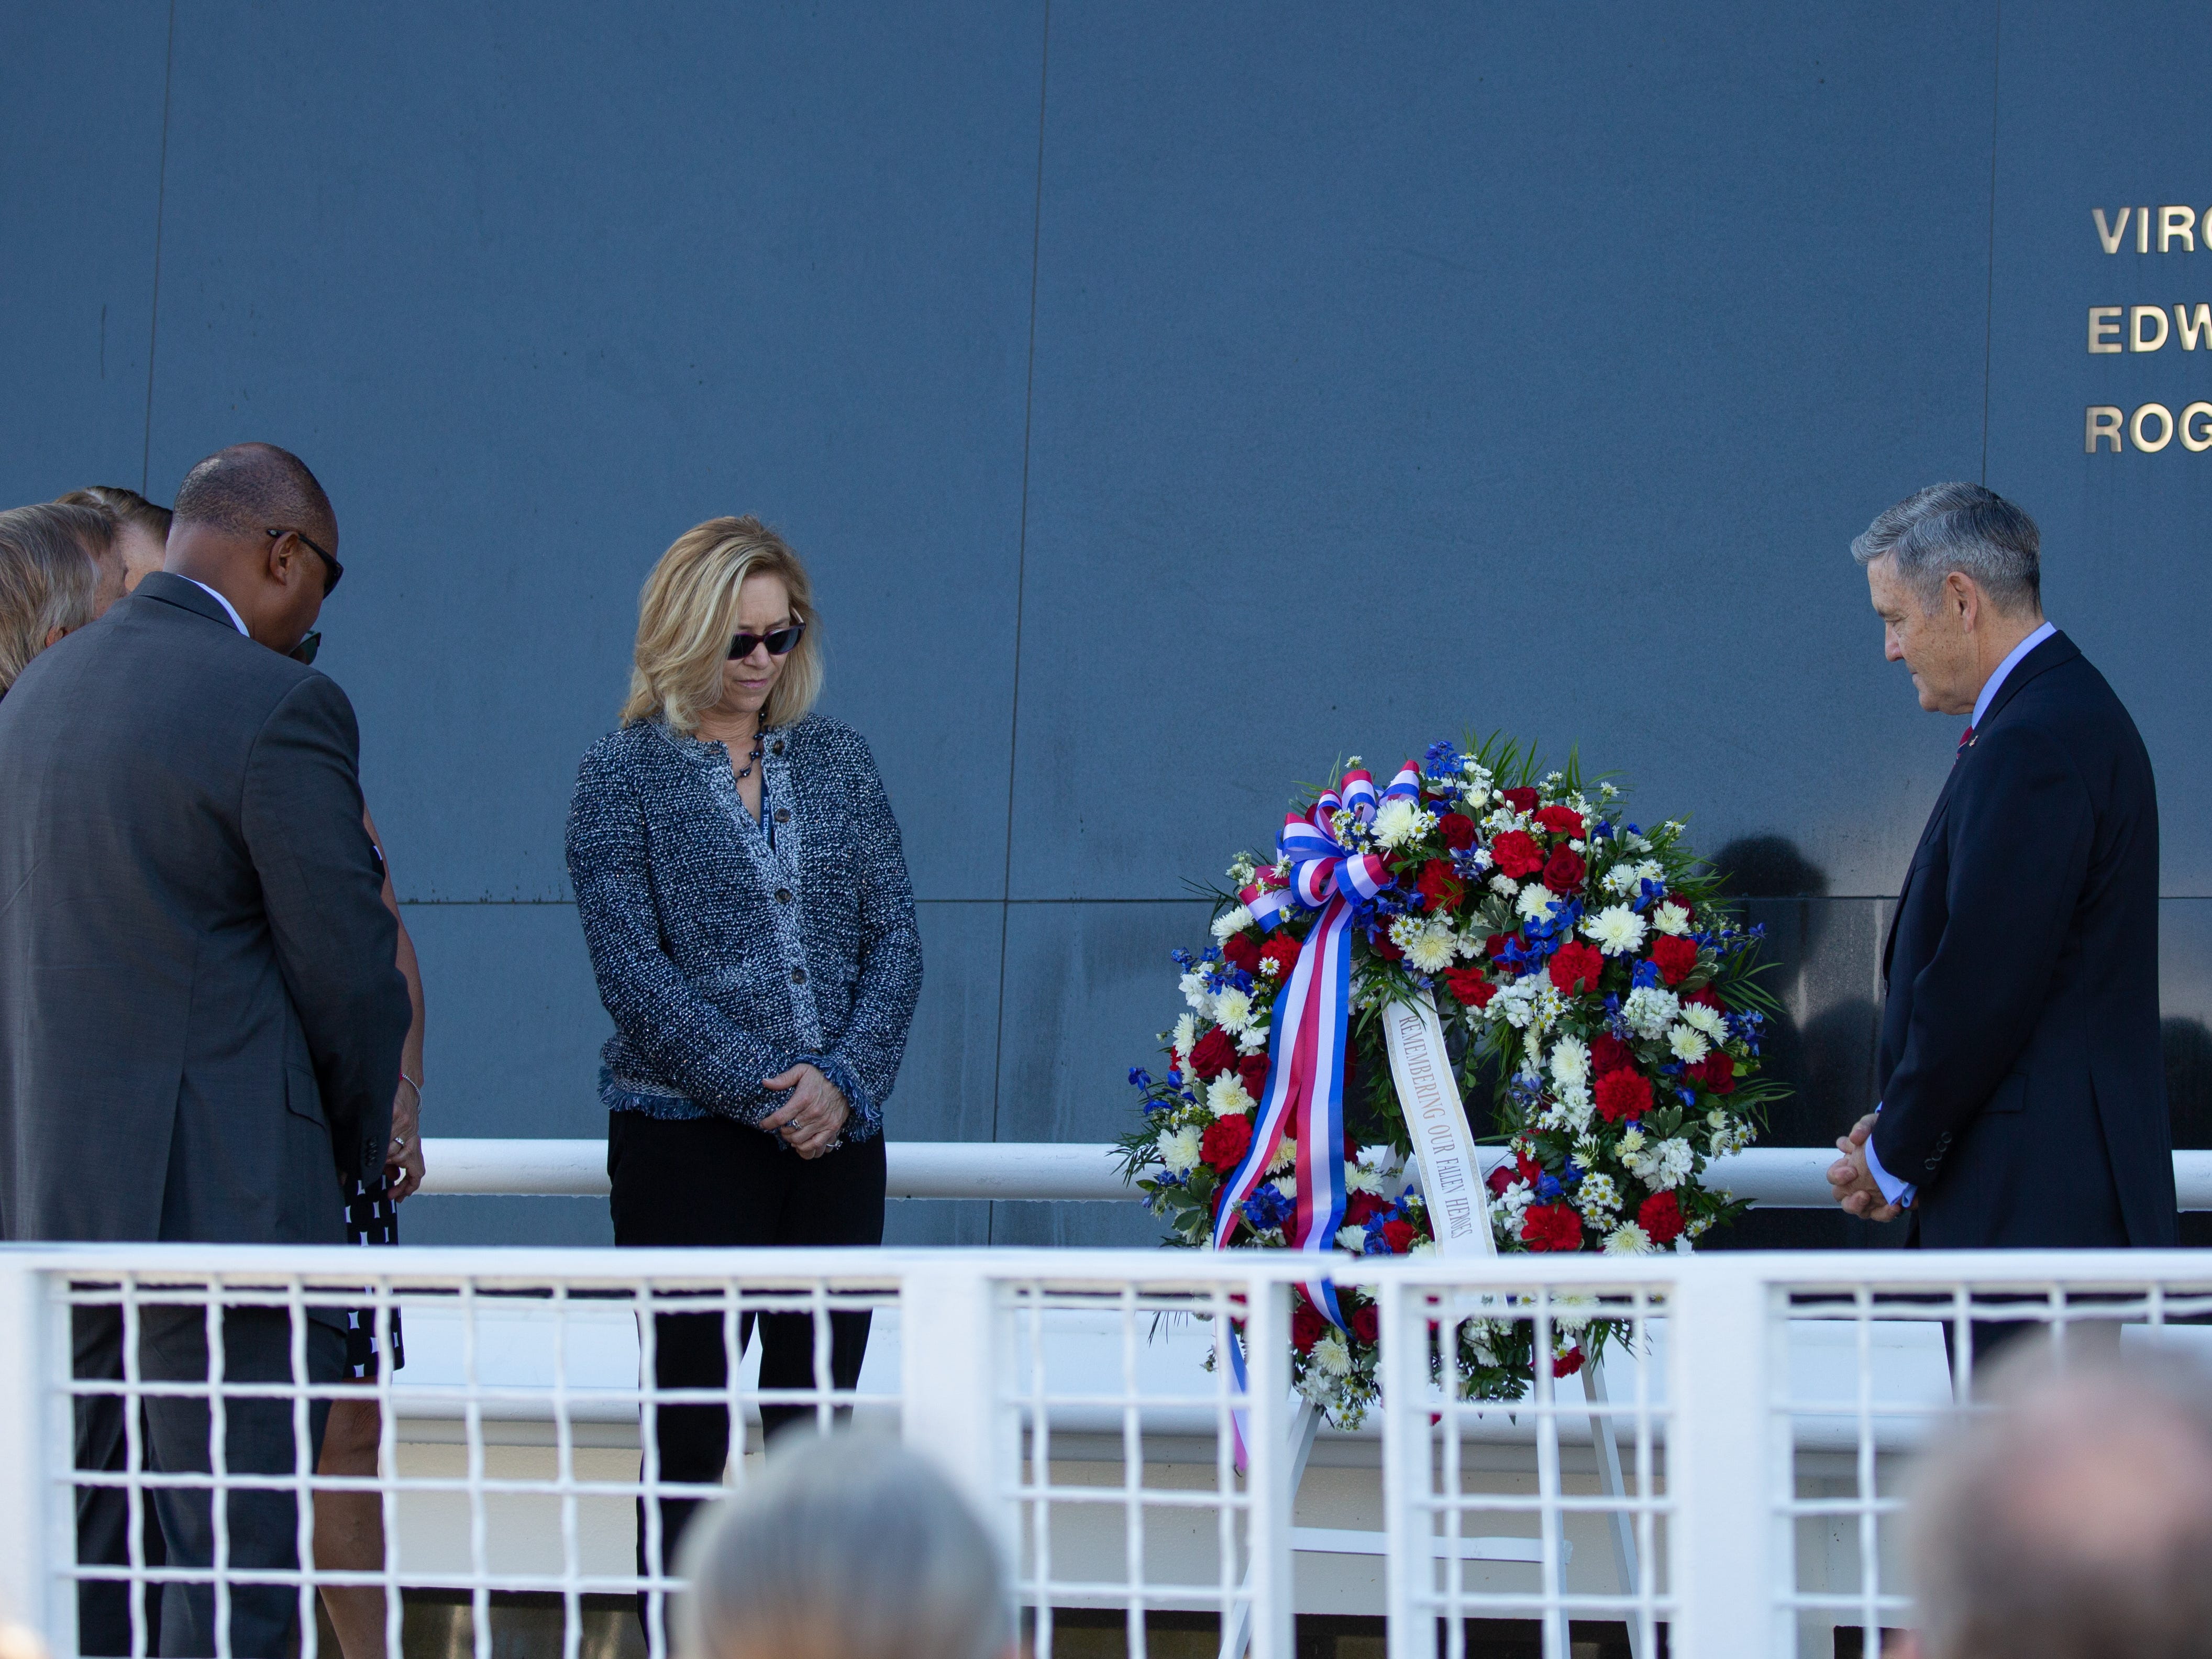 NASA officials stand silent to remember fallen astronauts at the Space Mirror Memorial for NASA's Day of Remembrance at the Kennedy Space Center Visitor Complex.